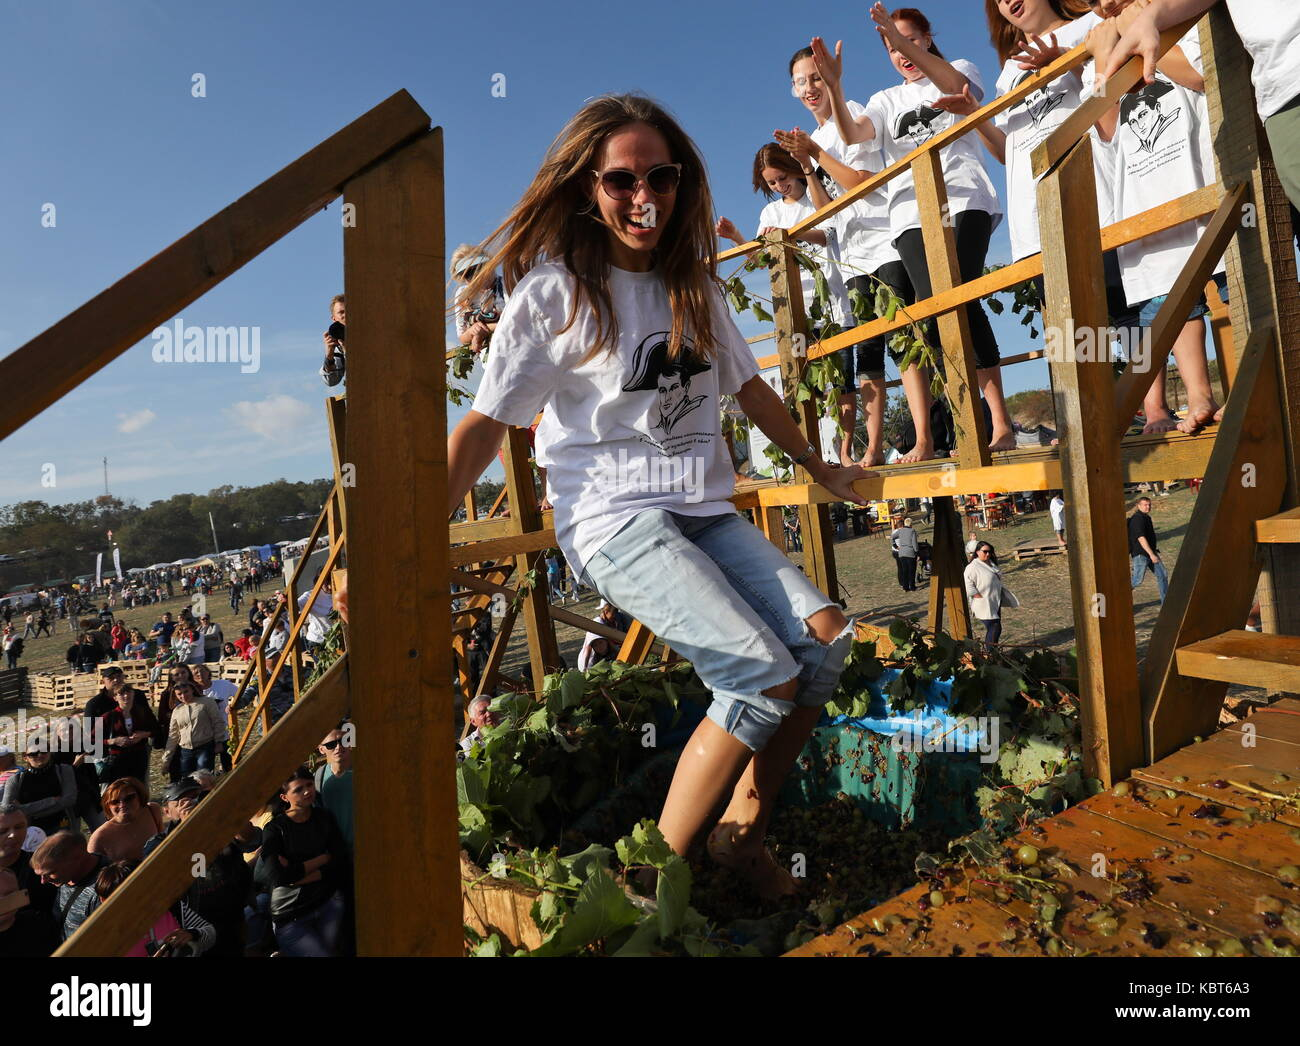 Crimea, Russia. 30th Sep, 2017. A girl stomps grapes at the WineFest grape harvesting and wine making festival at Stock Photo